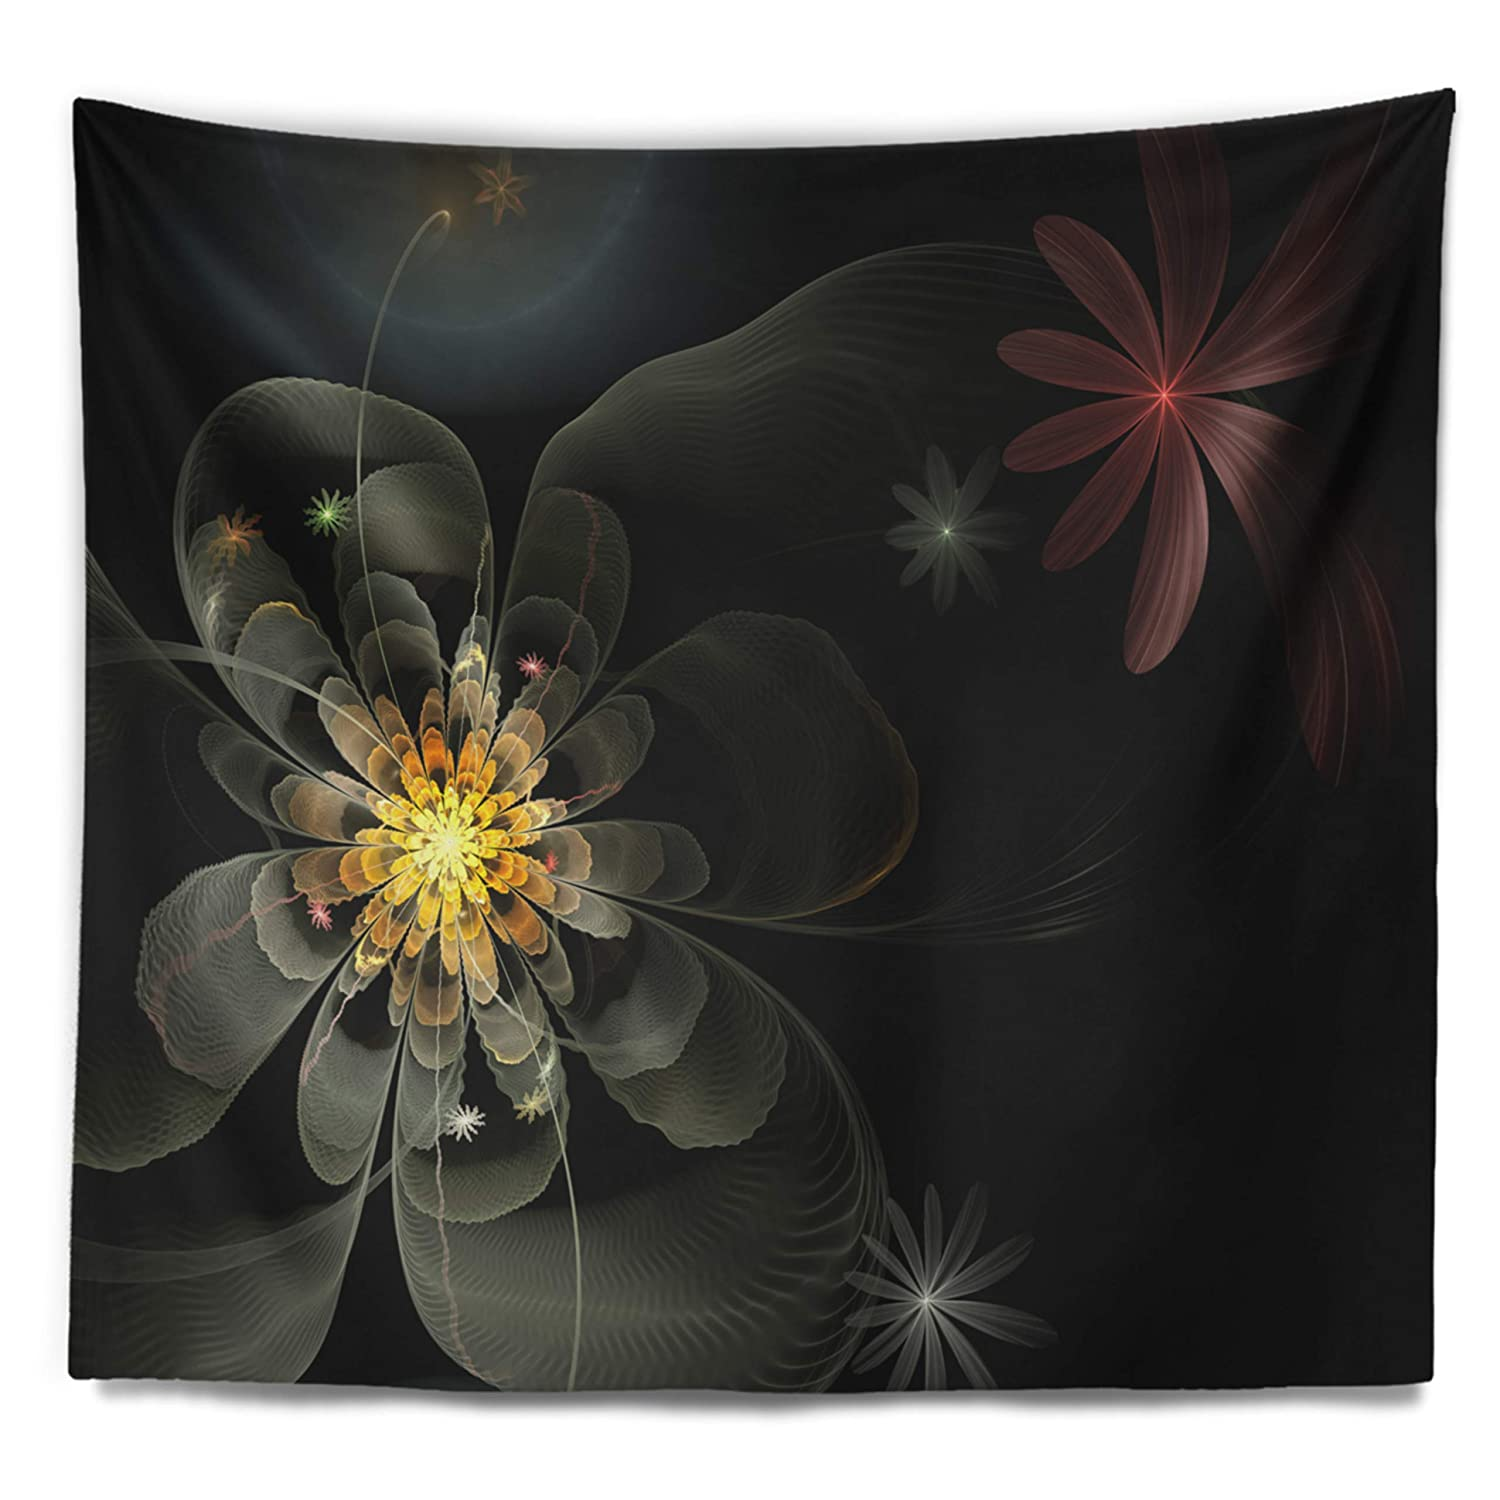 x 50 in Designart TAP12022-60-50  Yellow Small Fractal Flower in Black Floral Blanket D/écor Art for Home and Office Wall Tapestry Large 60 in in